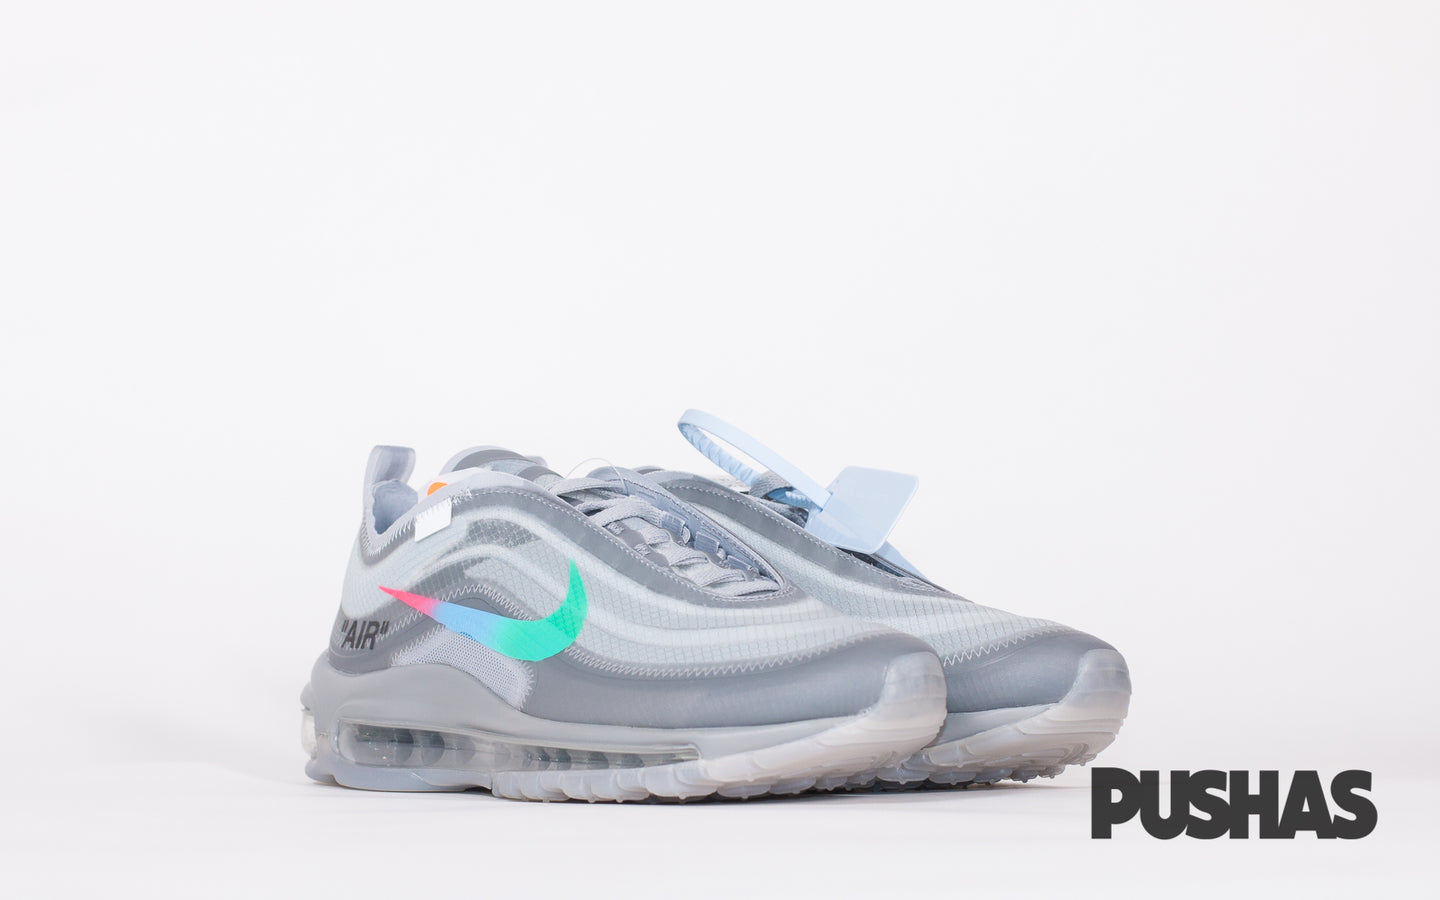 Air Max 97 x Off White 'Menta' (New) – PUSHAS